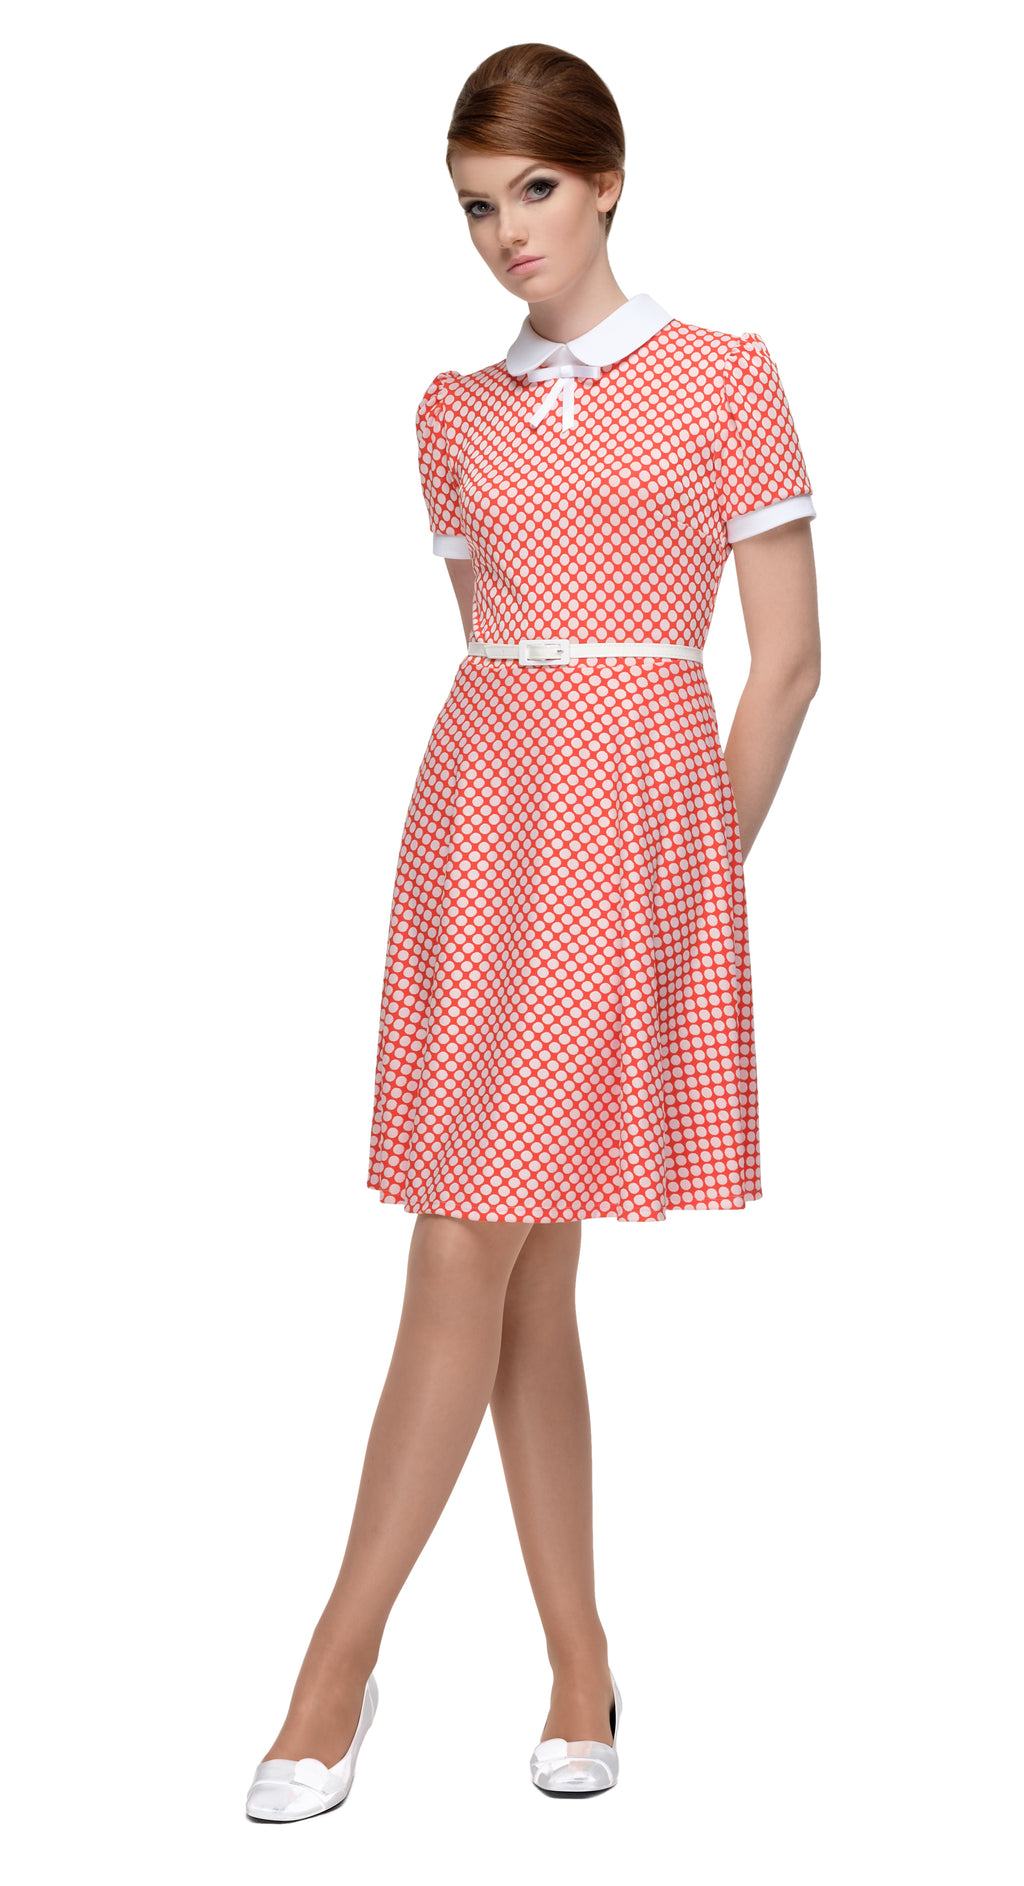 This red and white polka dot circle skirt Italian jersey dress is as adorable as it is flattering and comfortable. A vintage aesthetic bridging between late 50s Americana and early 60s Britain. It's a fun night out number, immediately flattering within the jersey's generous give. The contrasting cuffs and collar break up the polka dots beautifully whilst the faux patent leather belt and white ribbon bow provide a splash of standout detail.